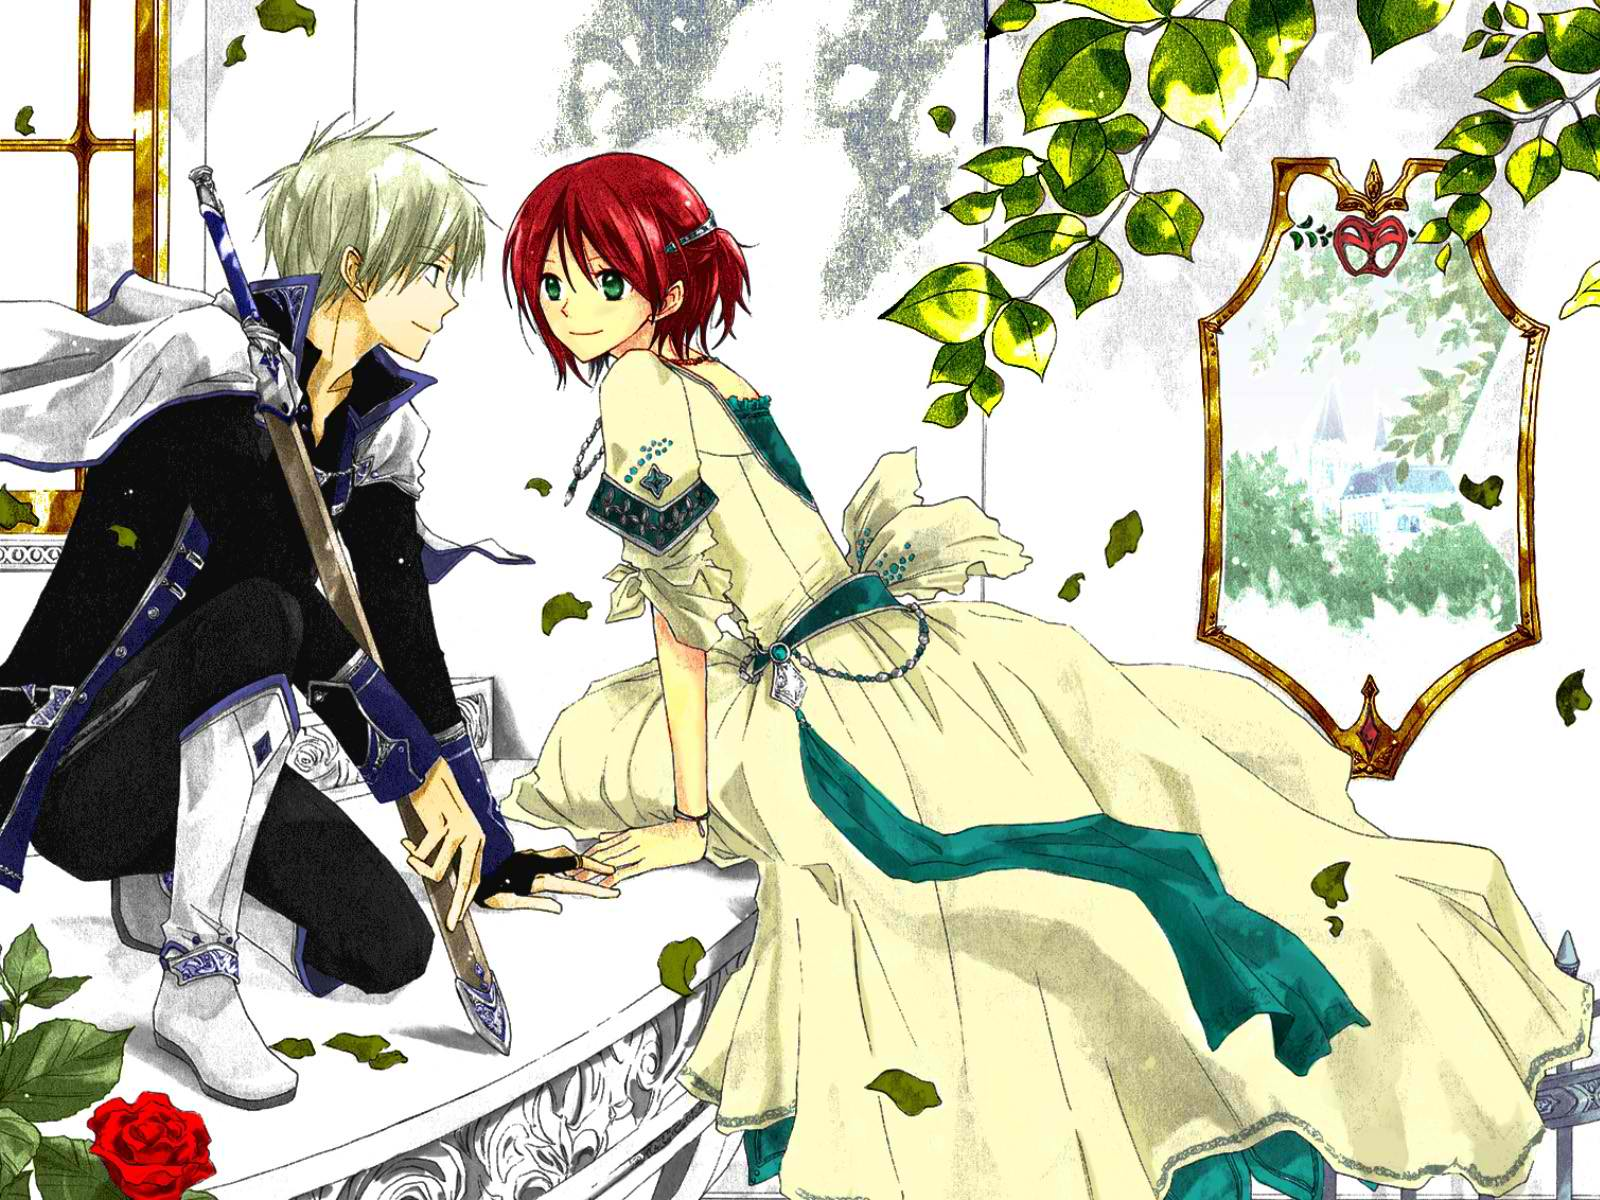 snow-white-with-the-red-hair-wallpapers-26112-4385404